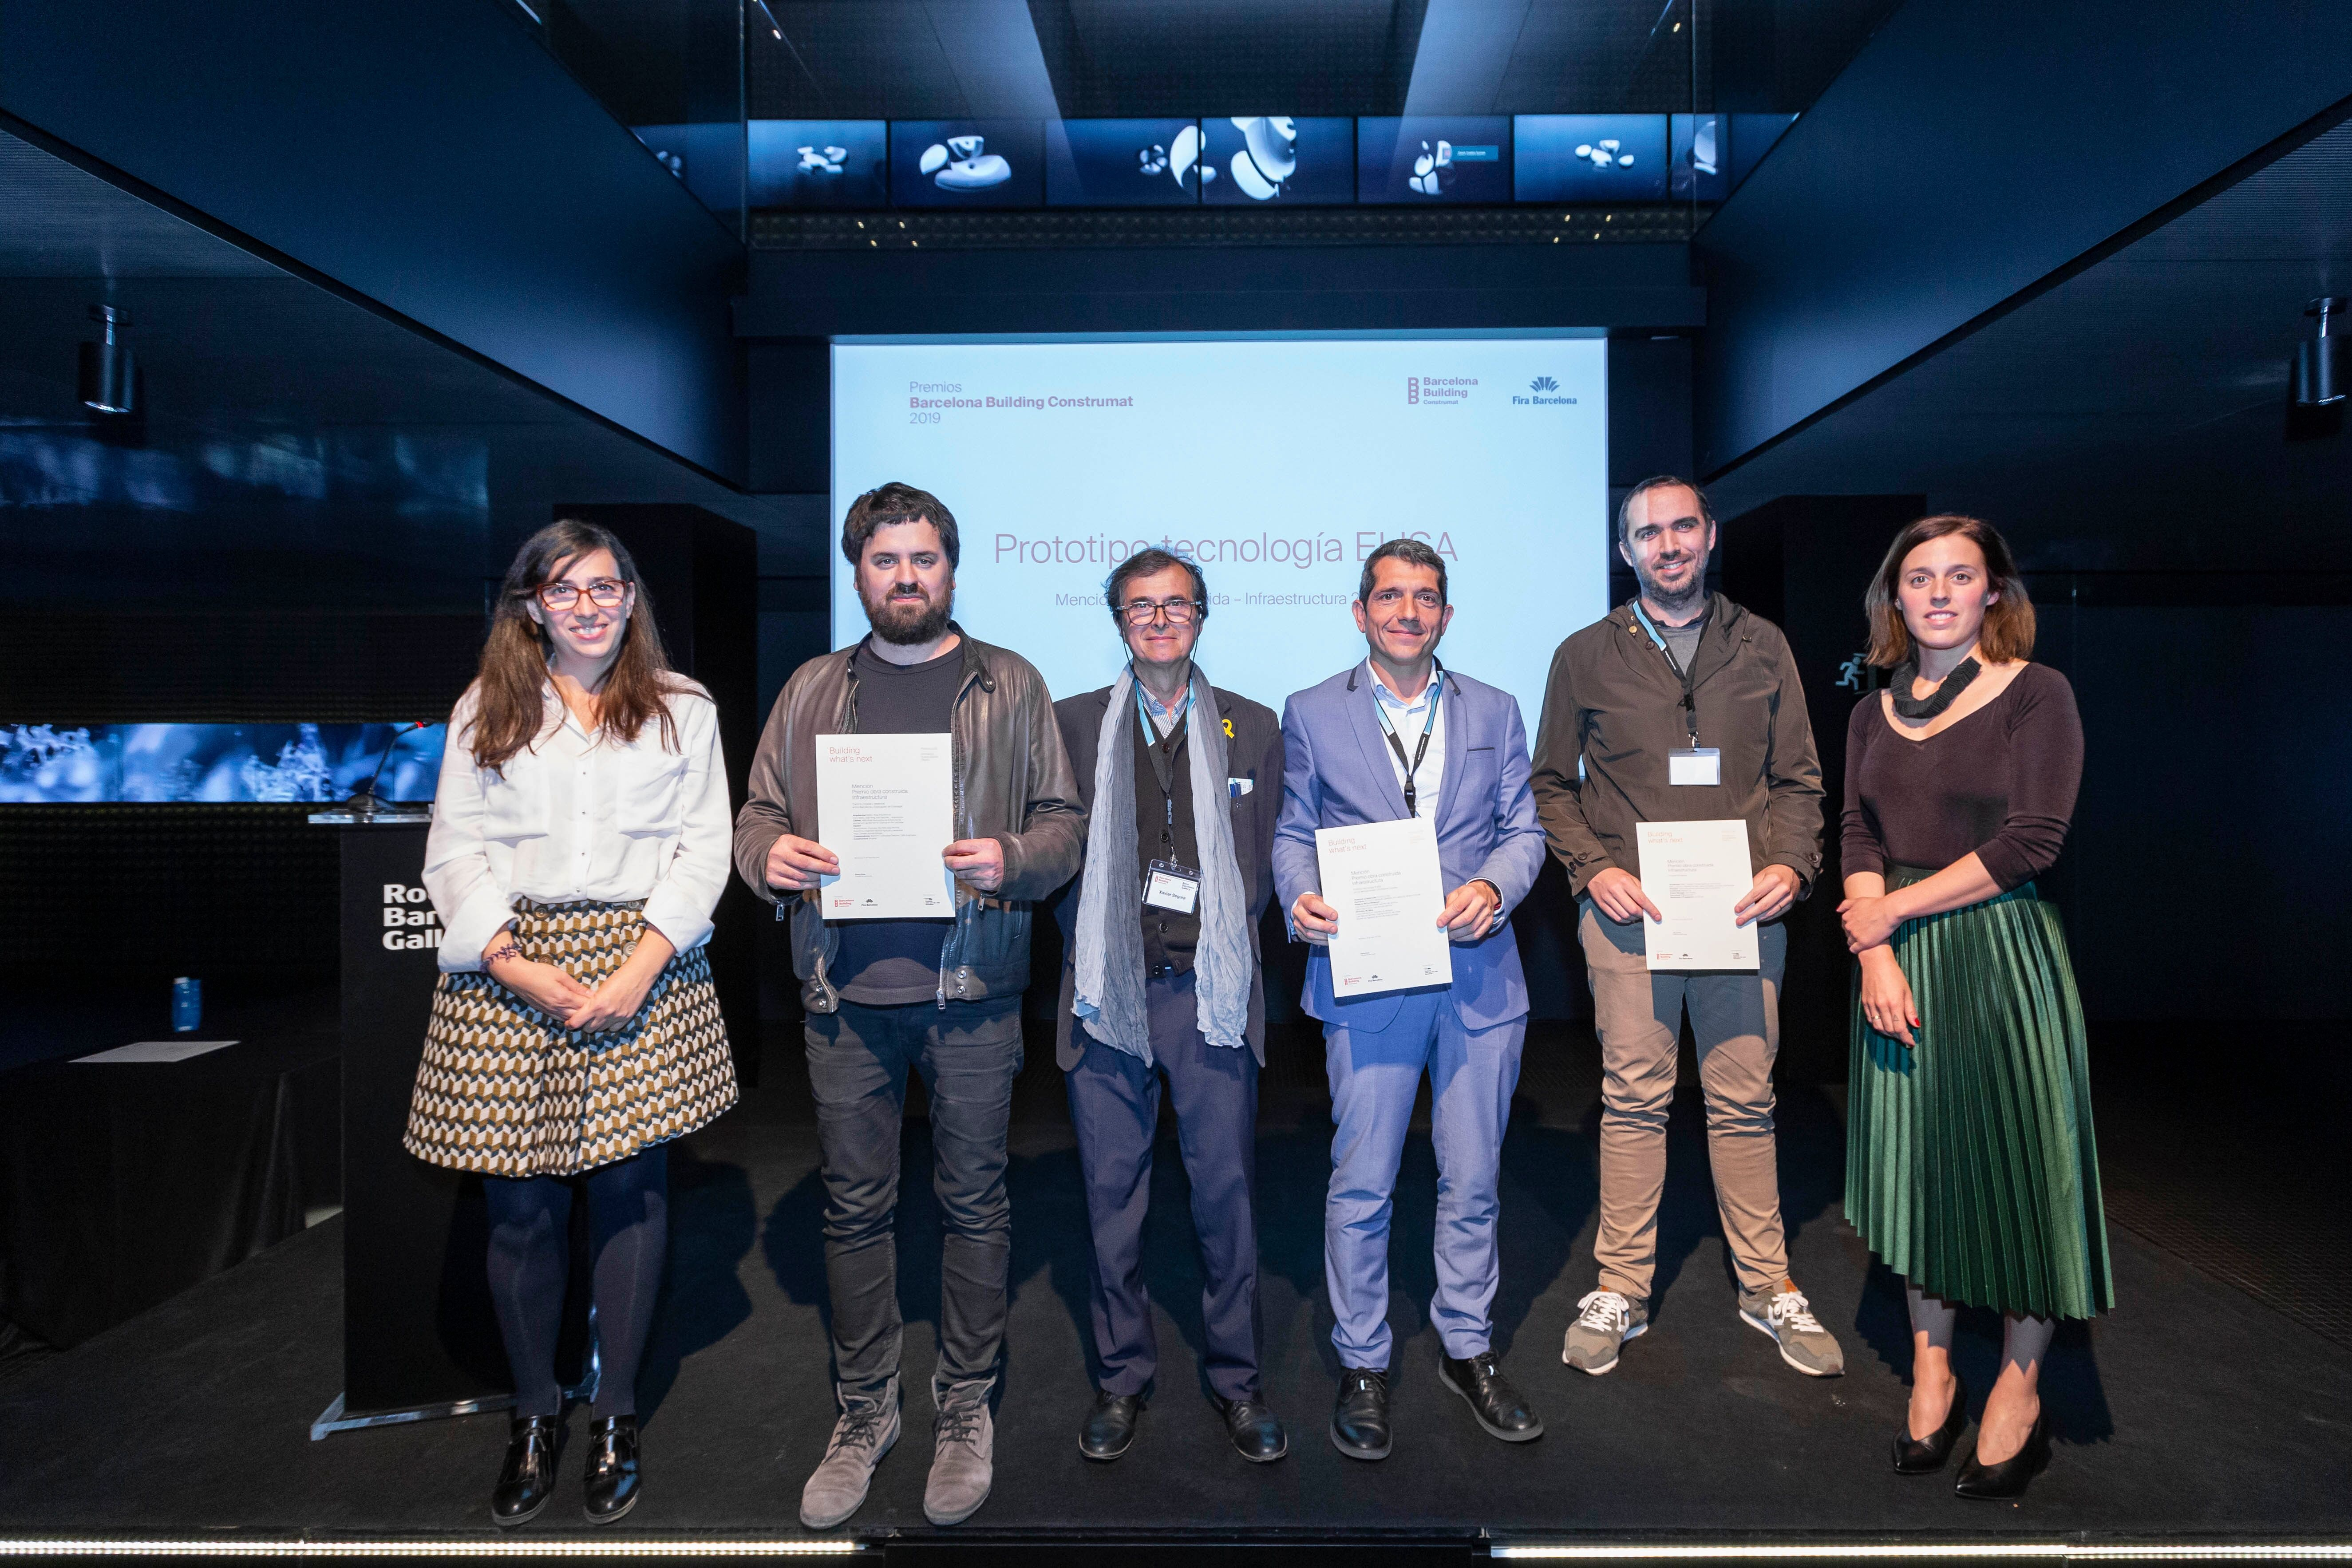 CONSTRUMAT AWARDS 2019. ELISA/ELICA TECHNOLOGY PROTOTYPE MENTION IN THE INFRASTRUCTURE WORK BUILT CATEGORY